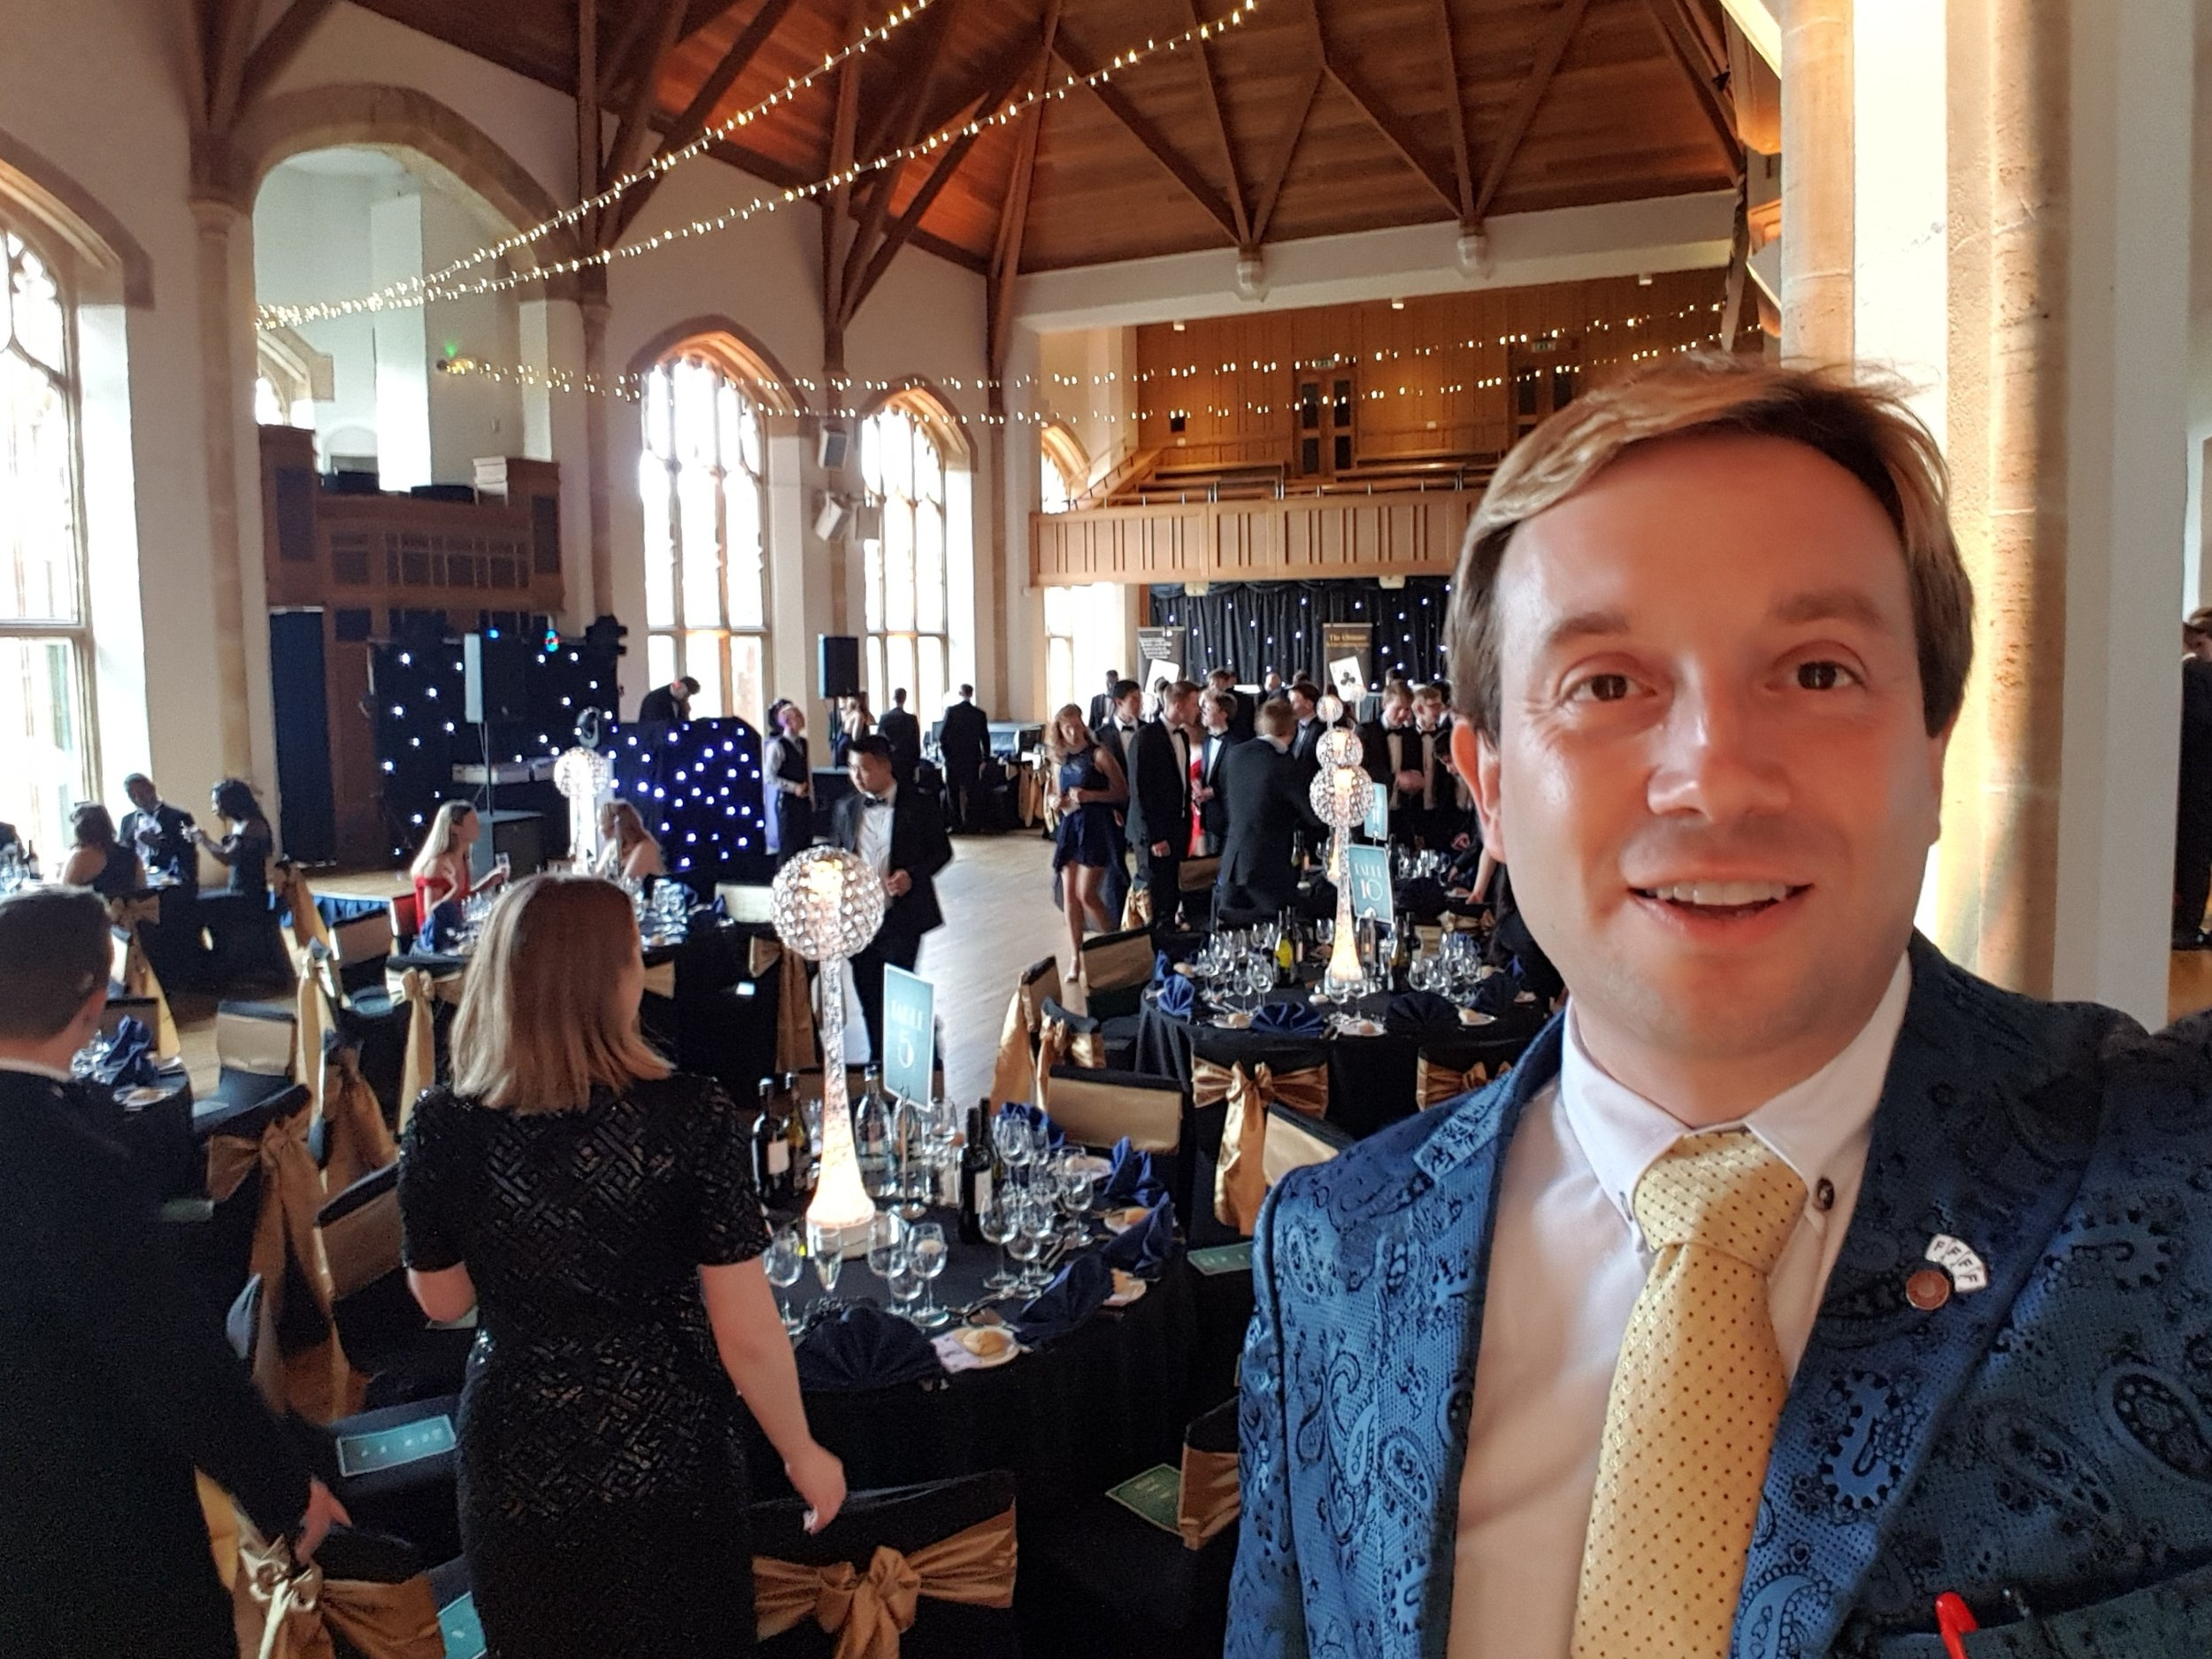 Bedford School. The Great Hall, Leavers Ball Magician